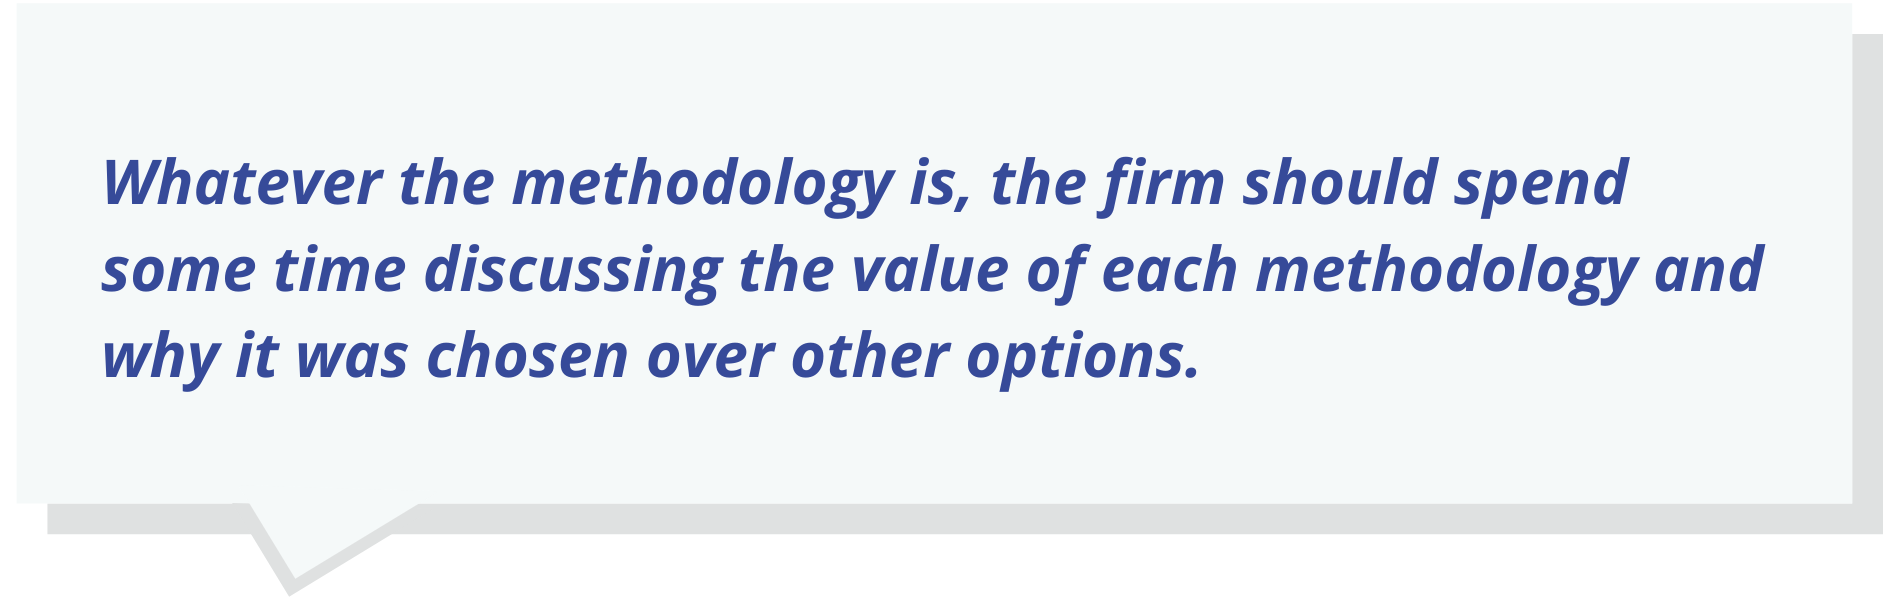 Whatever the methodology is, the firm should spend some time discussing the value of each methodology and why it was chosen over other options.